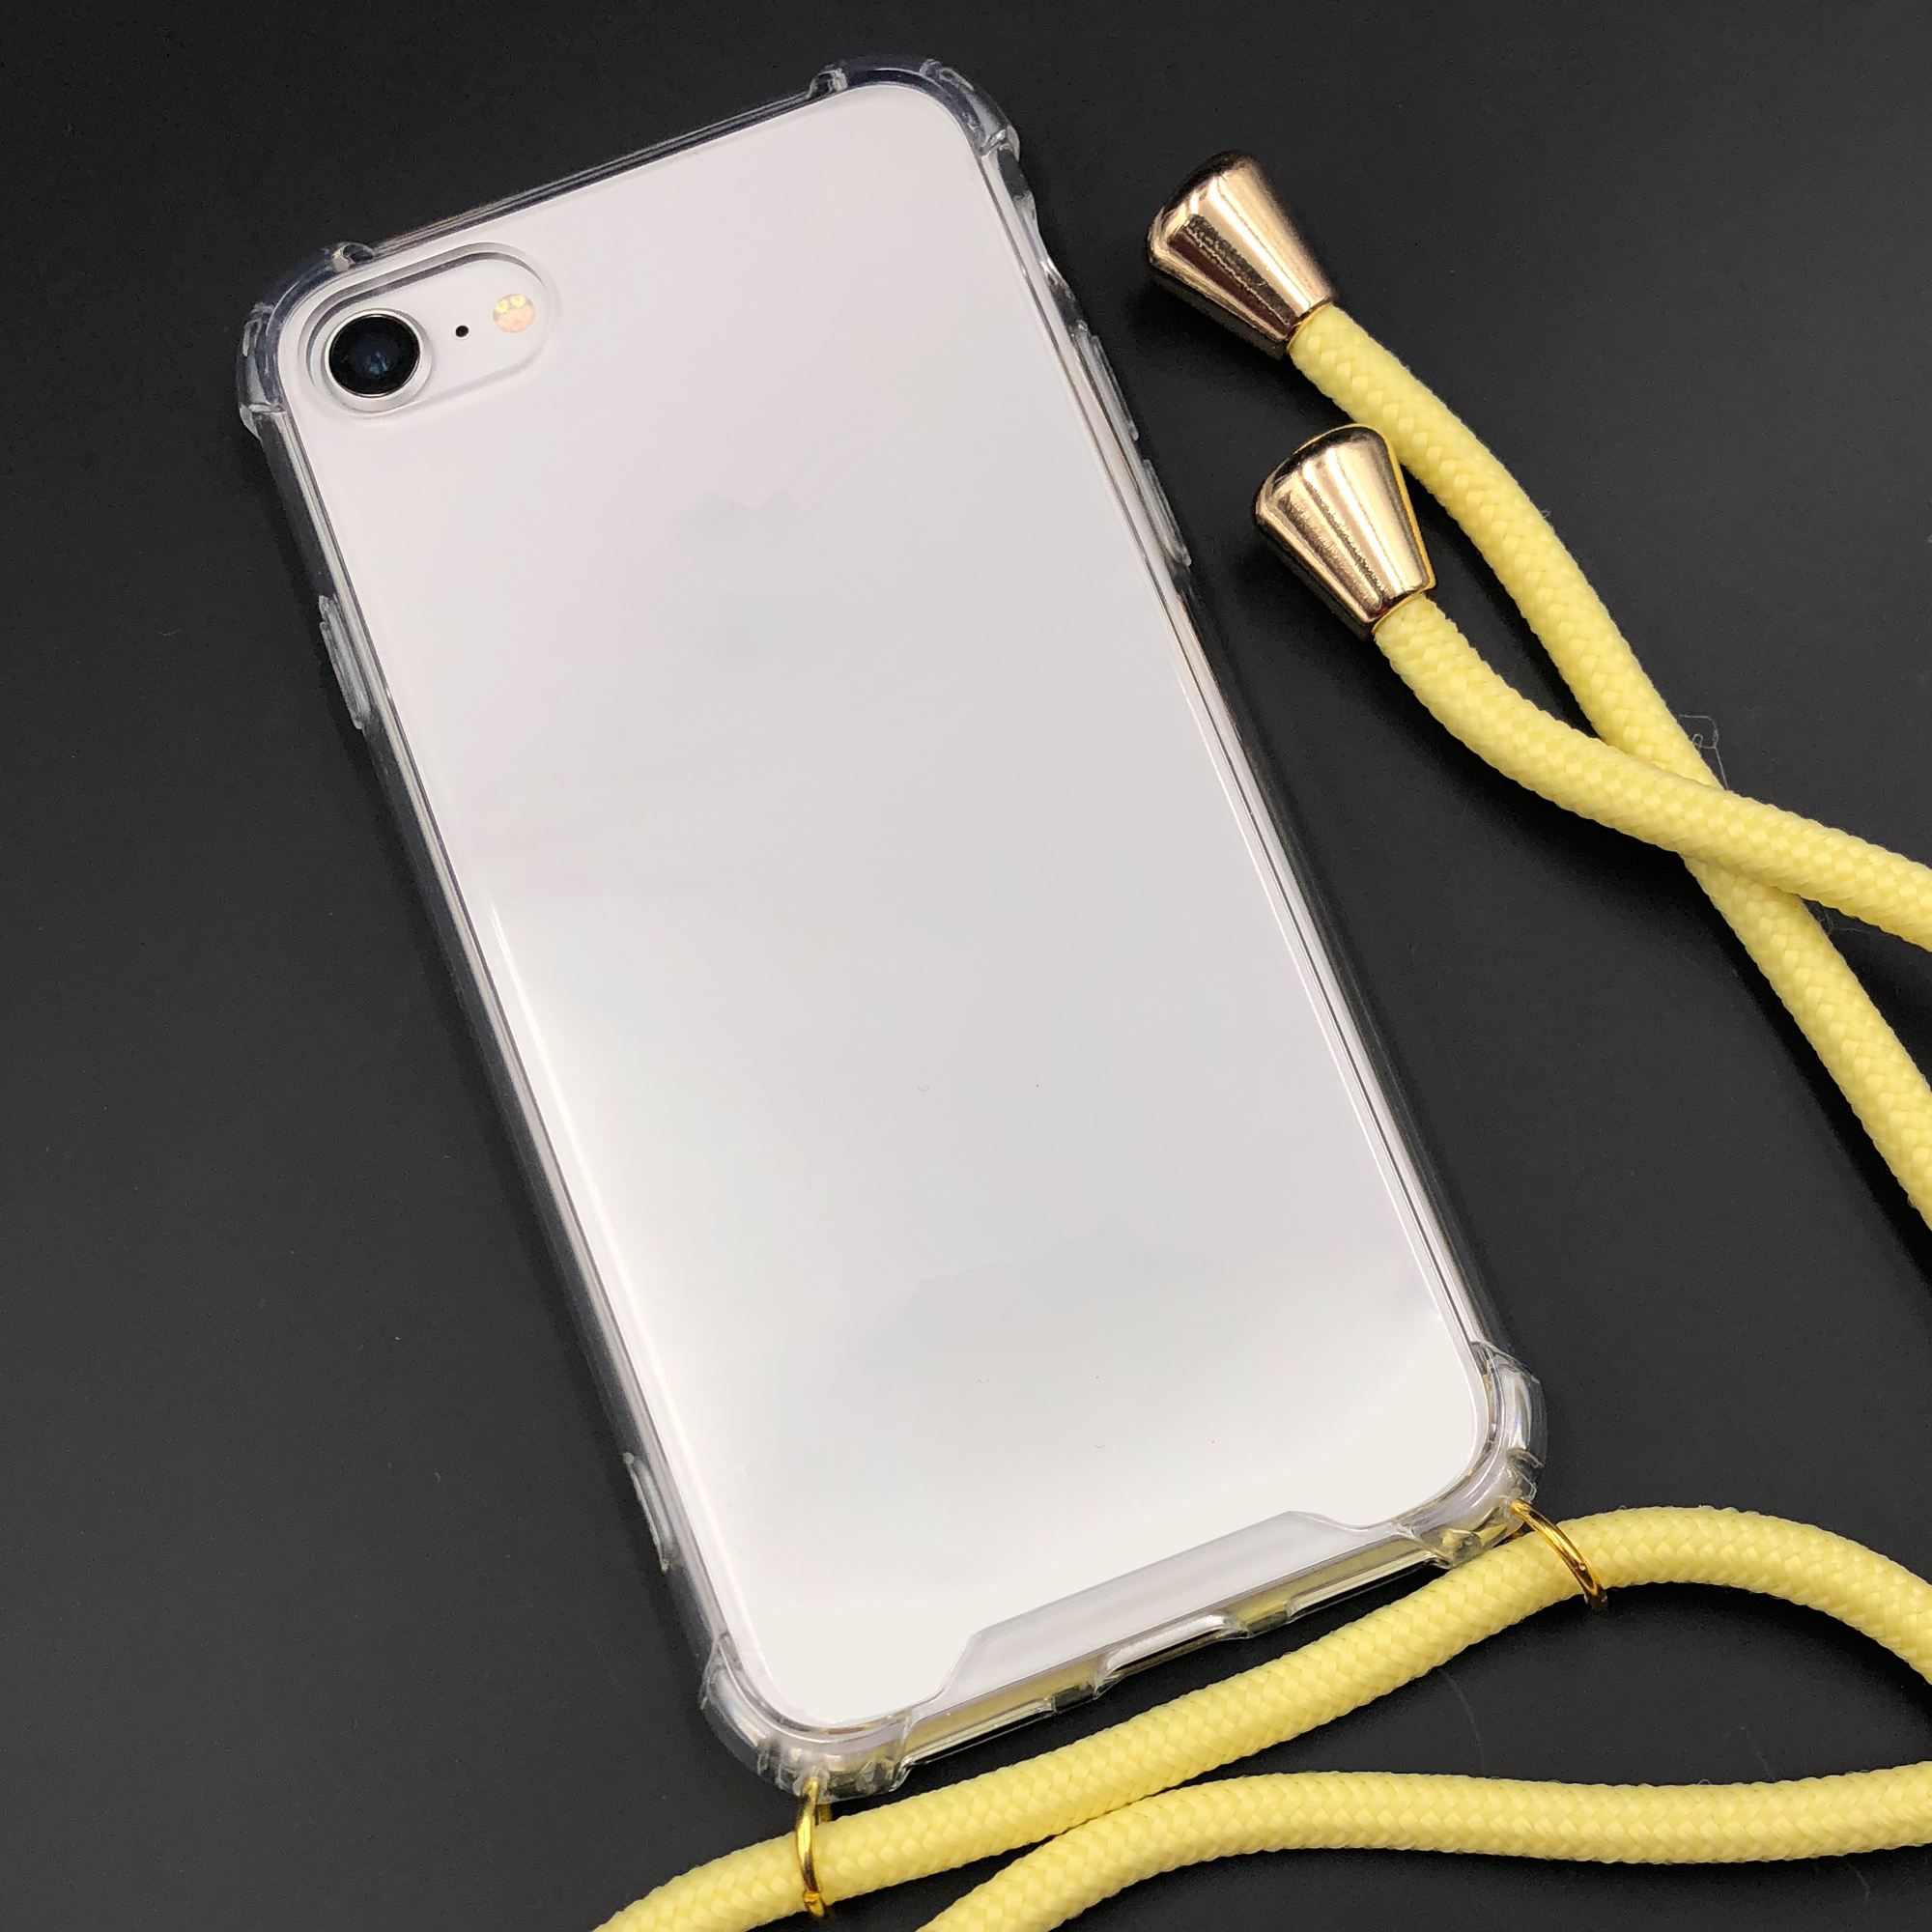 newest collection 2eb29 ec01d New Arrival Pc Tpu Phone Back Cover Neck Strap Lanyard Cell Phone Case For  Iphone Xs Max - Buy Pc Tpu Phone Back Cover,Neck Strap Lanyard Cell Phone  ...